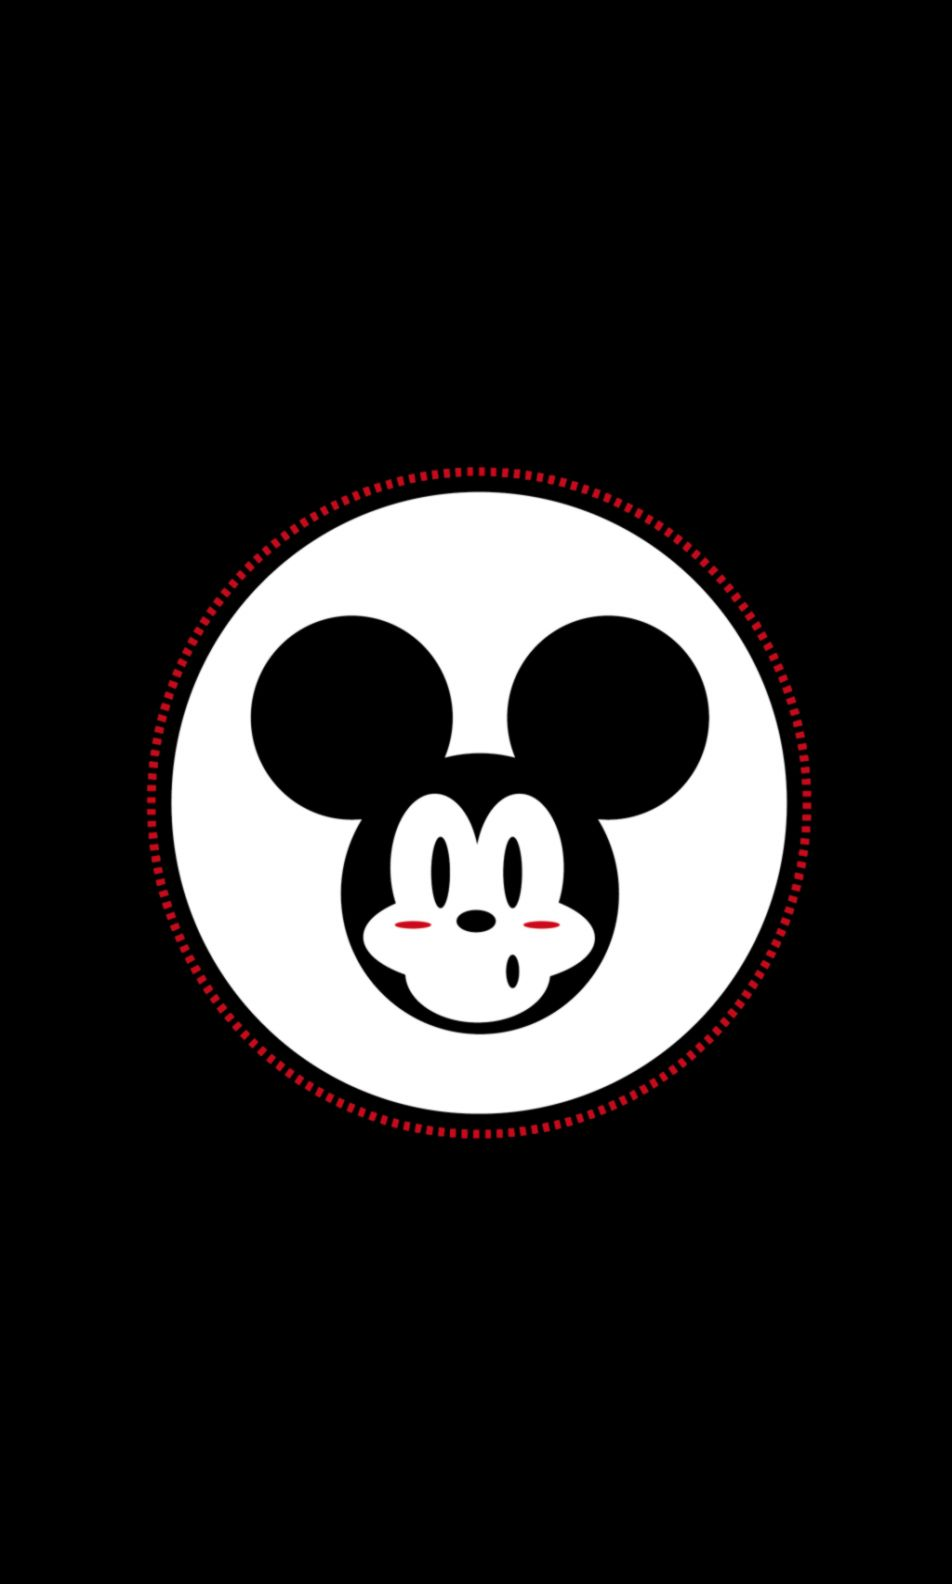 Mickey Mouse Theme Iphone 5 Wallpaper Disney Wallpaper In